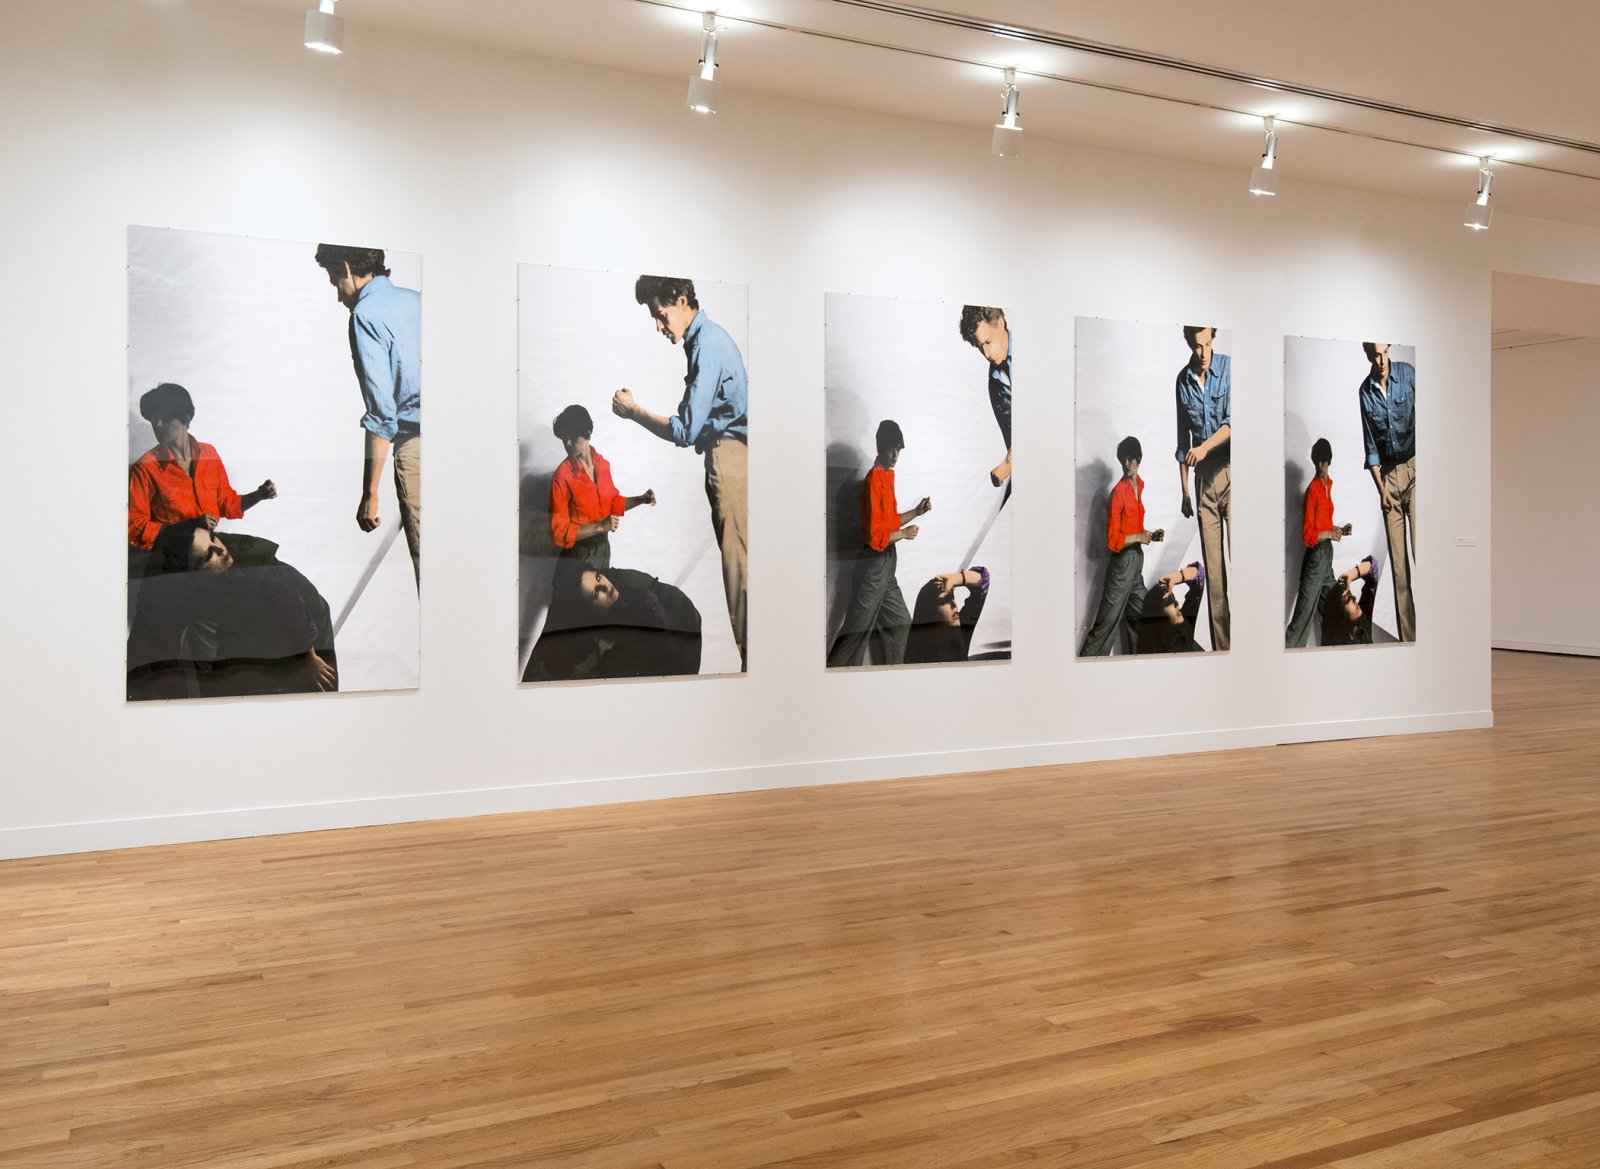 Ian Wallace, The Constructor, 1976, 5 hand-coloured silver gelatin prints, each 69 x 47 in. (175 x 119 cm). Installation view, A Literature of Images, Vancouver Art Gallery, 2012 by Ian Wallace